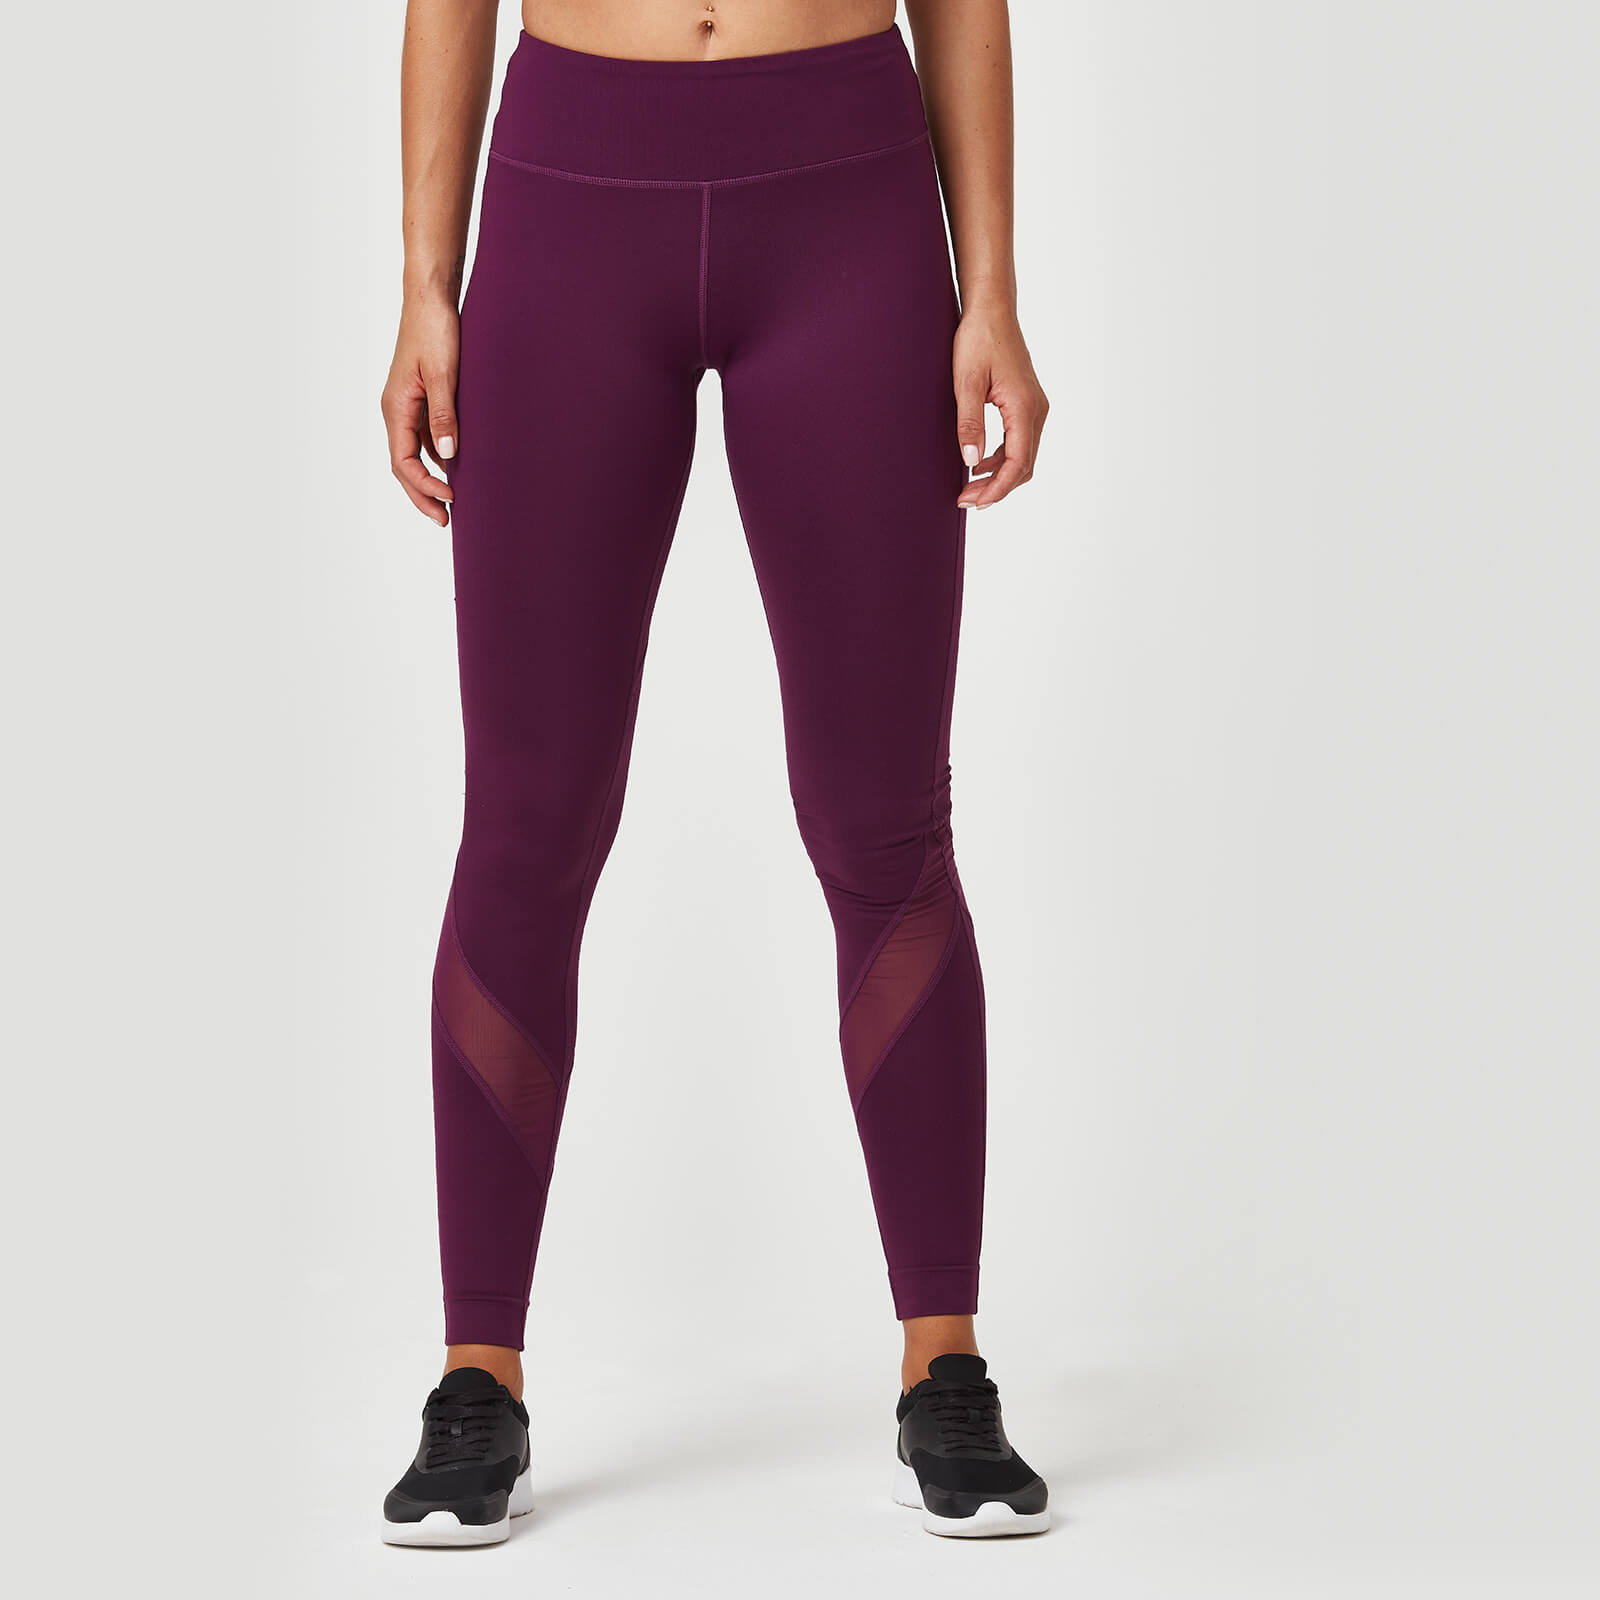 Myprotein Heartbeat Full Length Leggings - Plum - XS